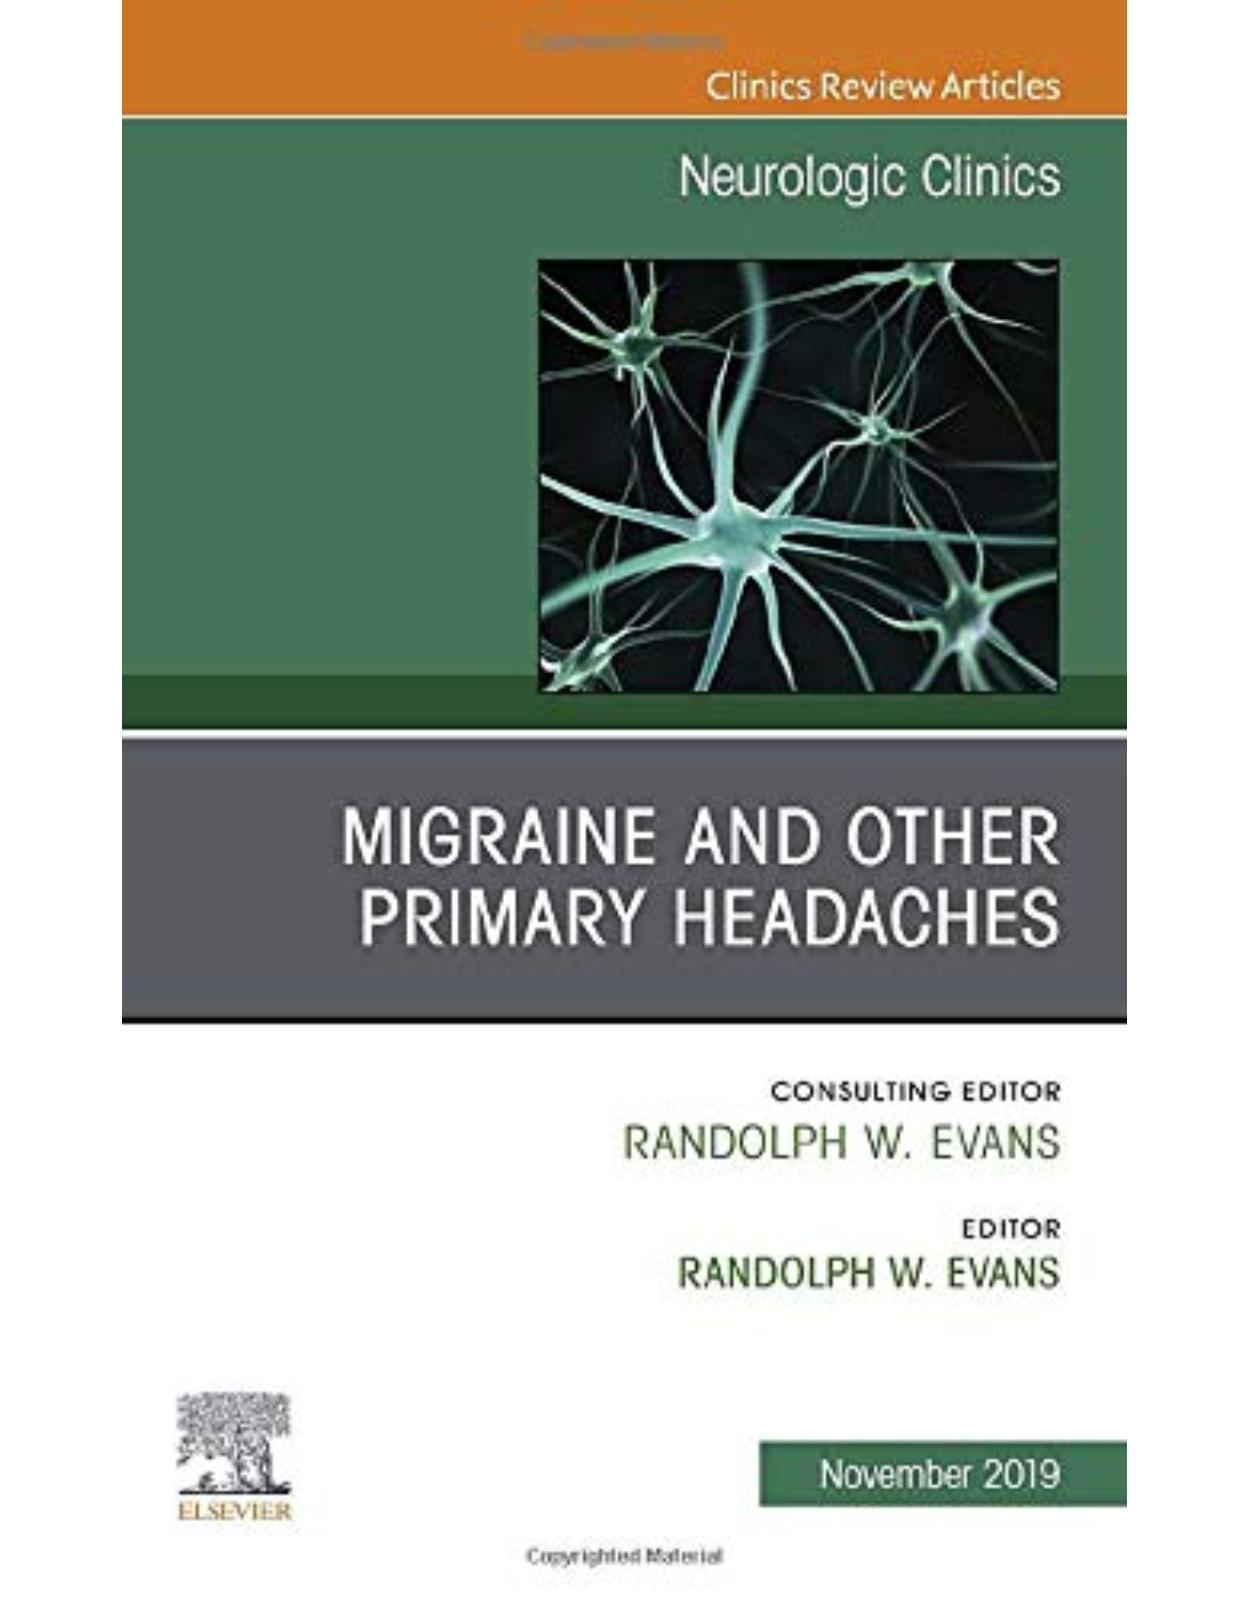 Migraine and other Primary Headaches, An Issue of Neurologic Clinics, Volume 37-4